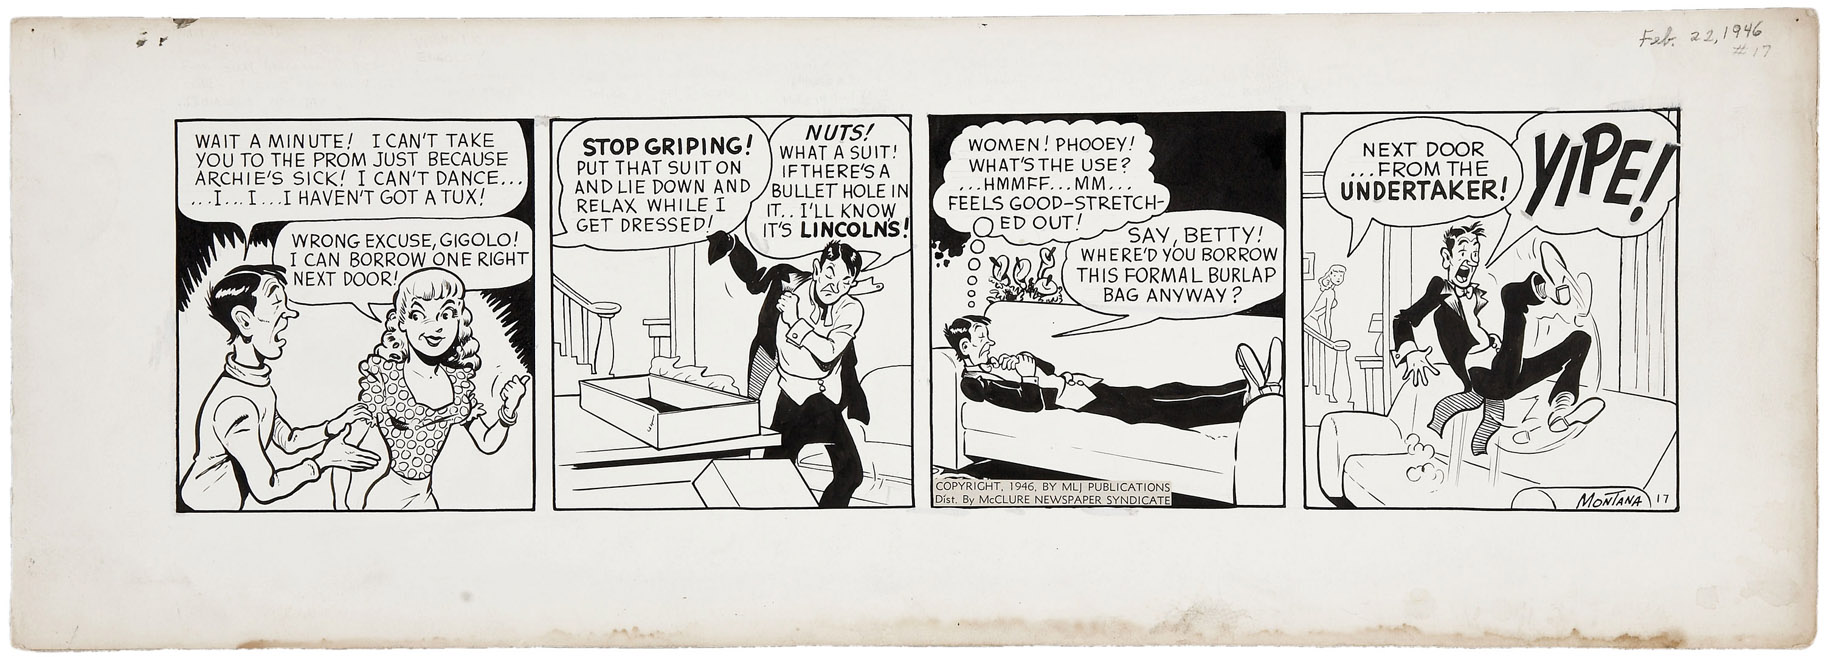 Archie daily newspaper strip are not